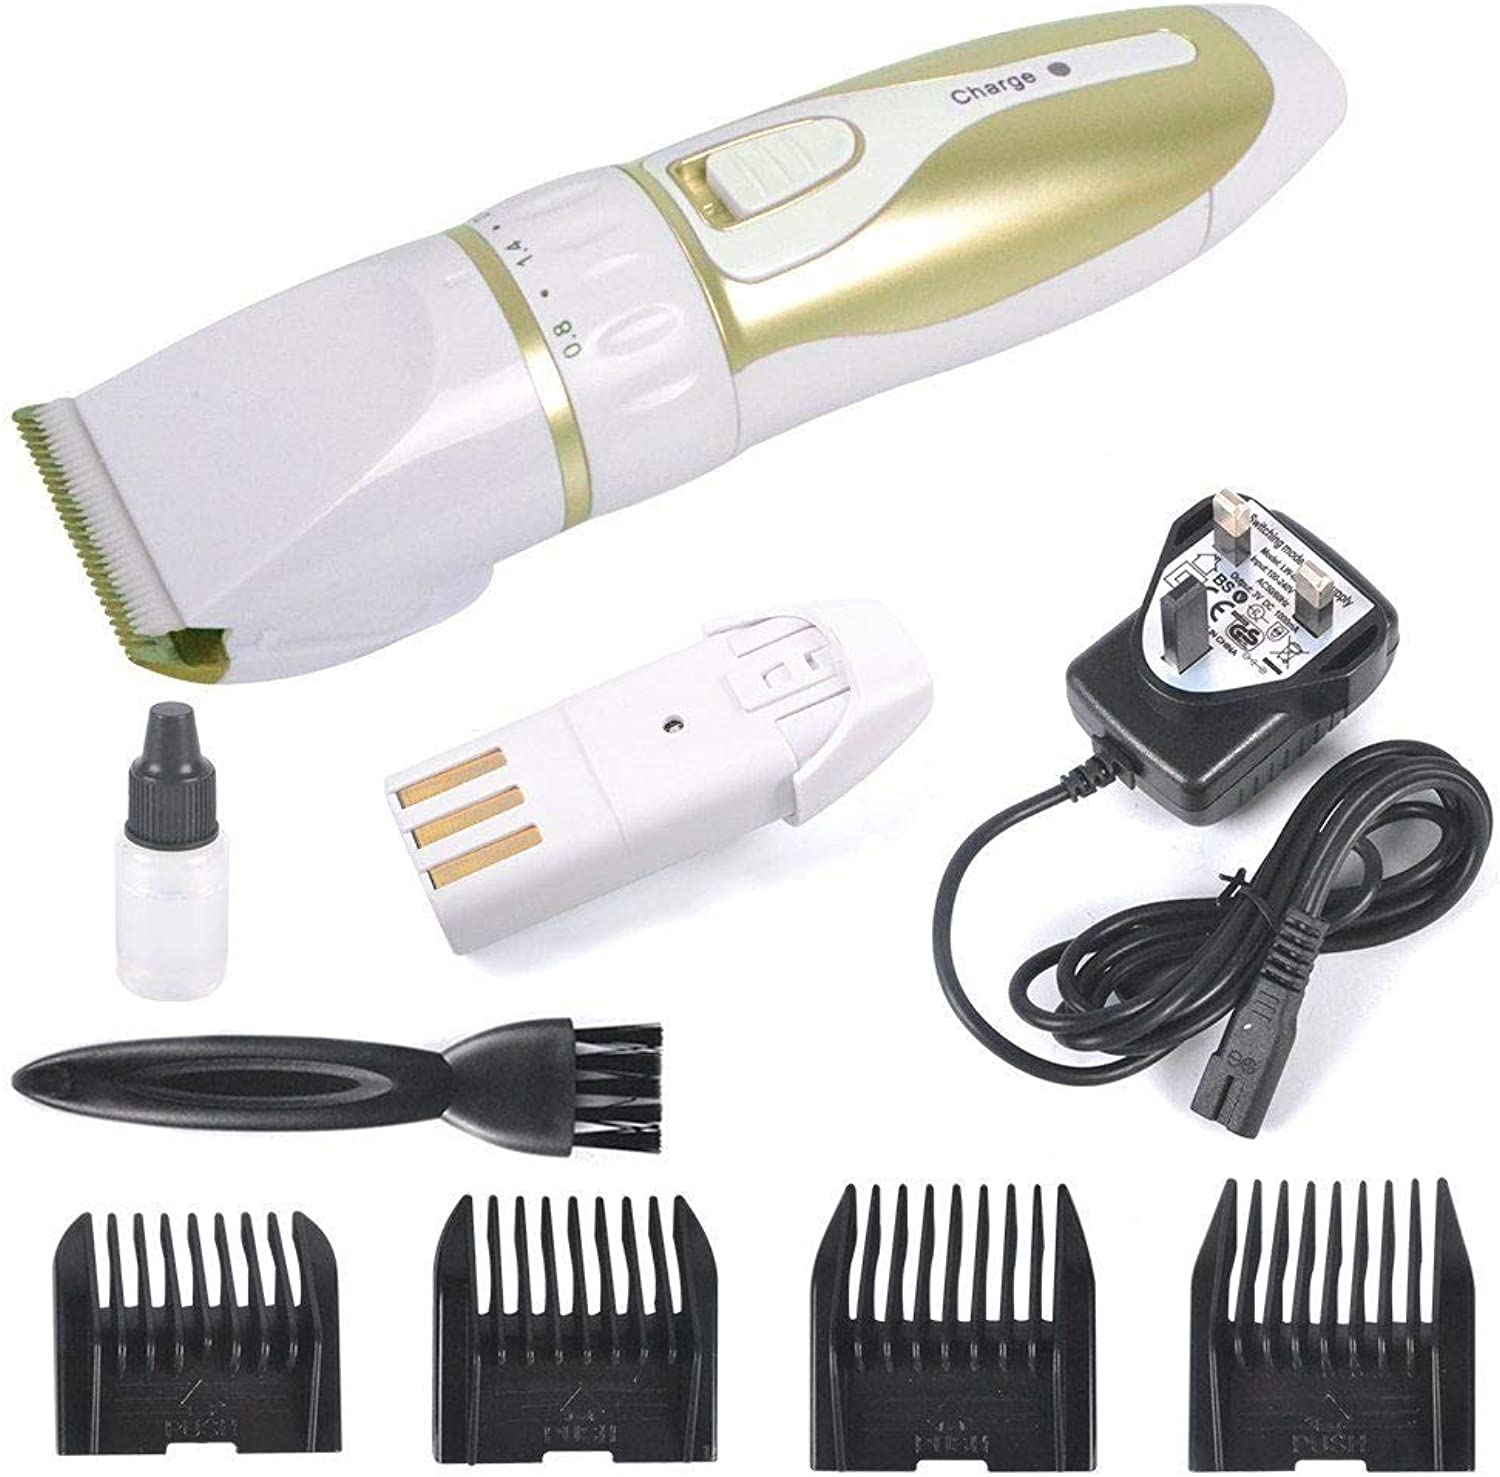 Generic t Clipper Hair Trimmer haver Razor Grooming Electric Animal Pet Electric A Shaver Razor rimmer Shav Dog Cat c Anima Grooming Quiet Clipper